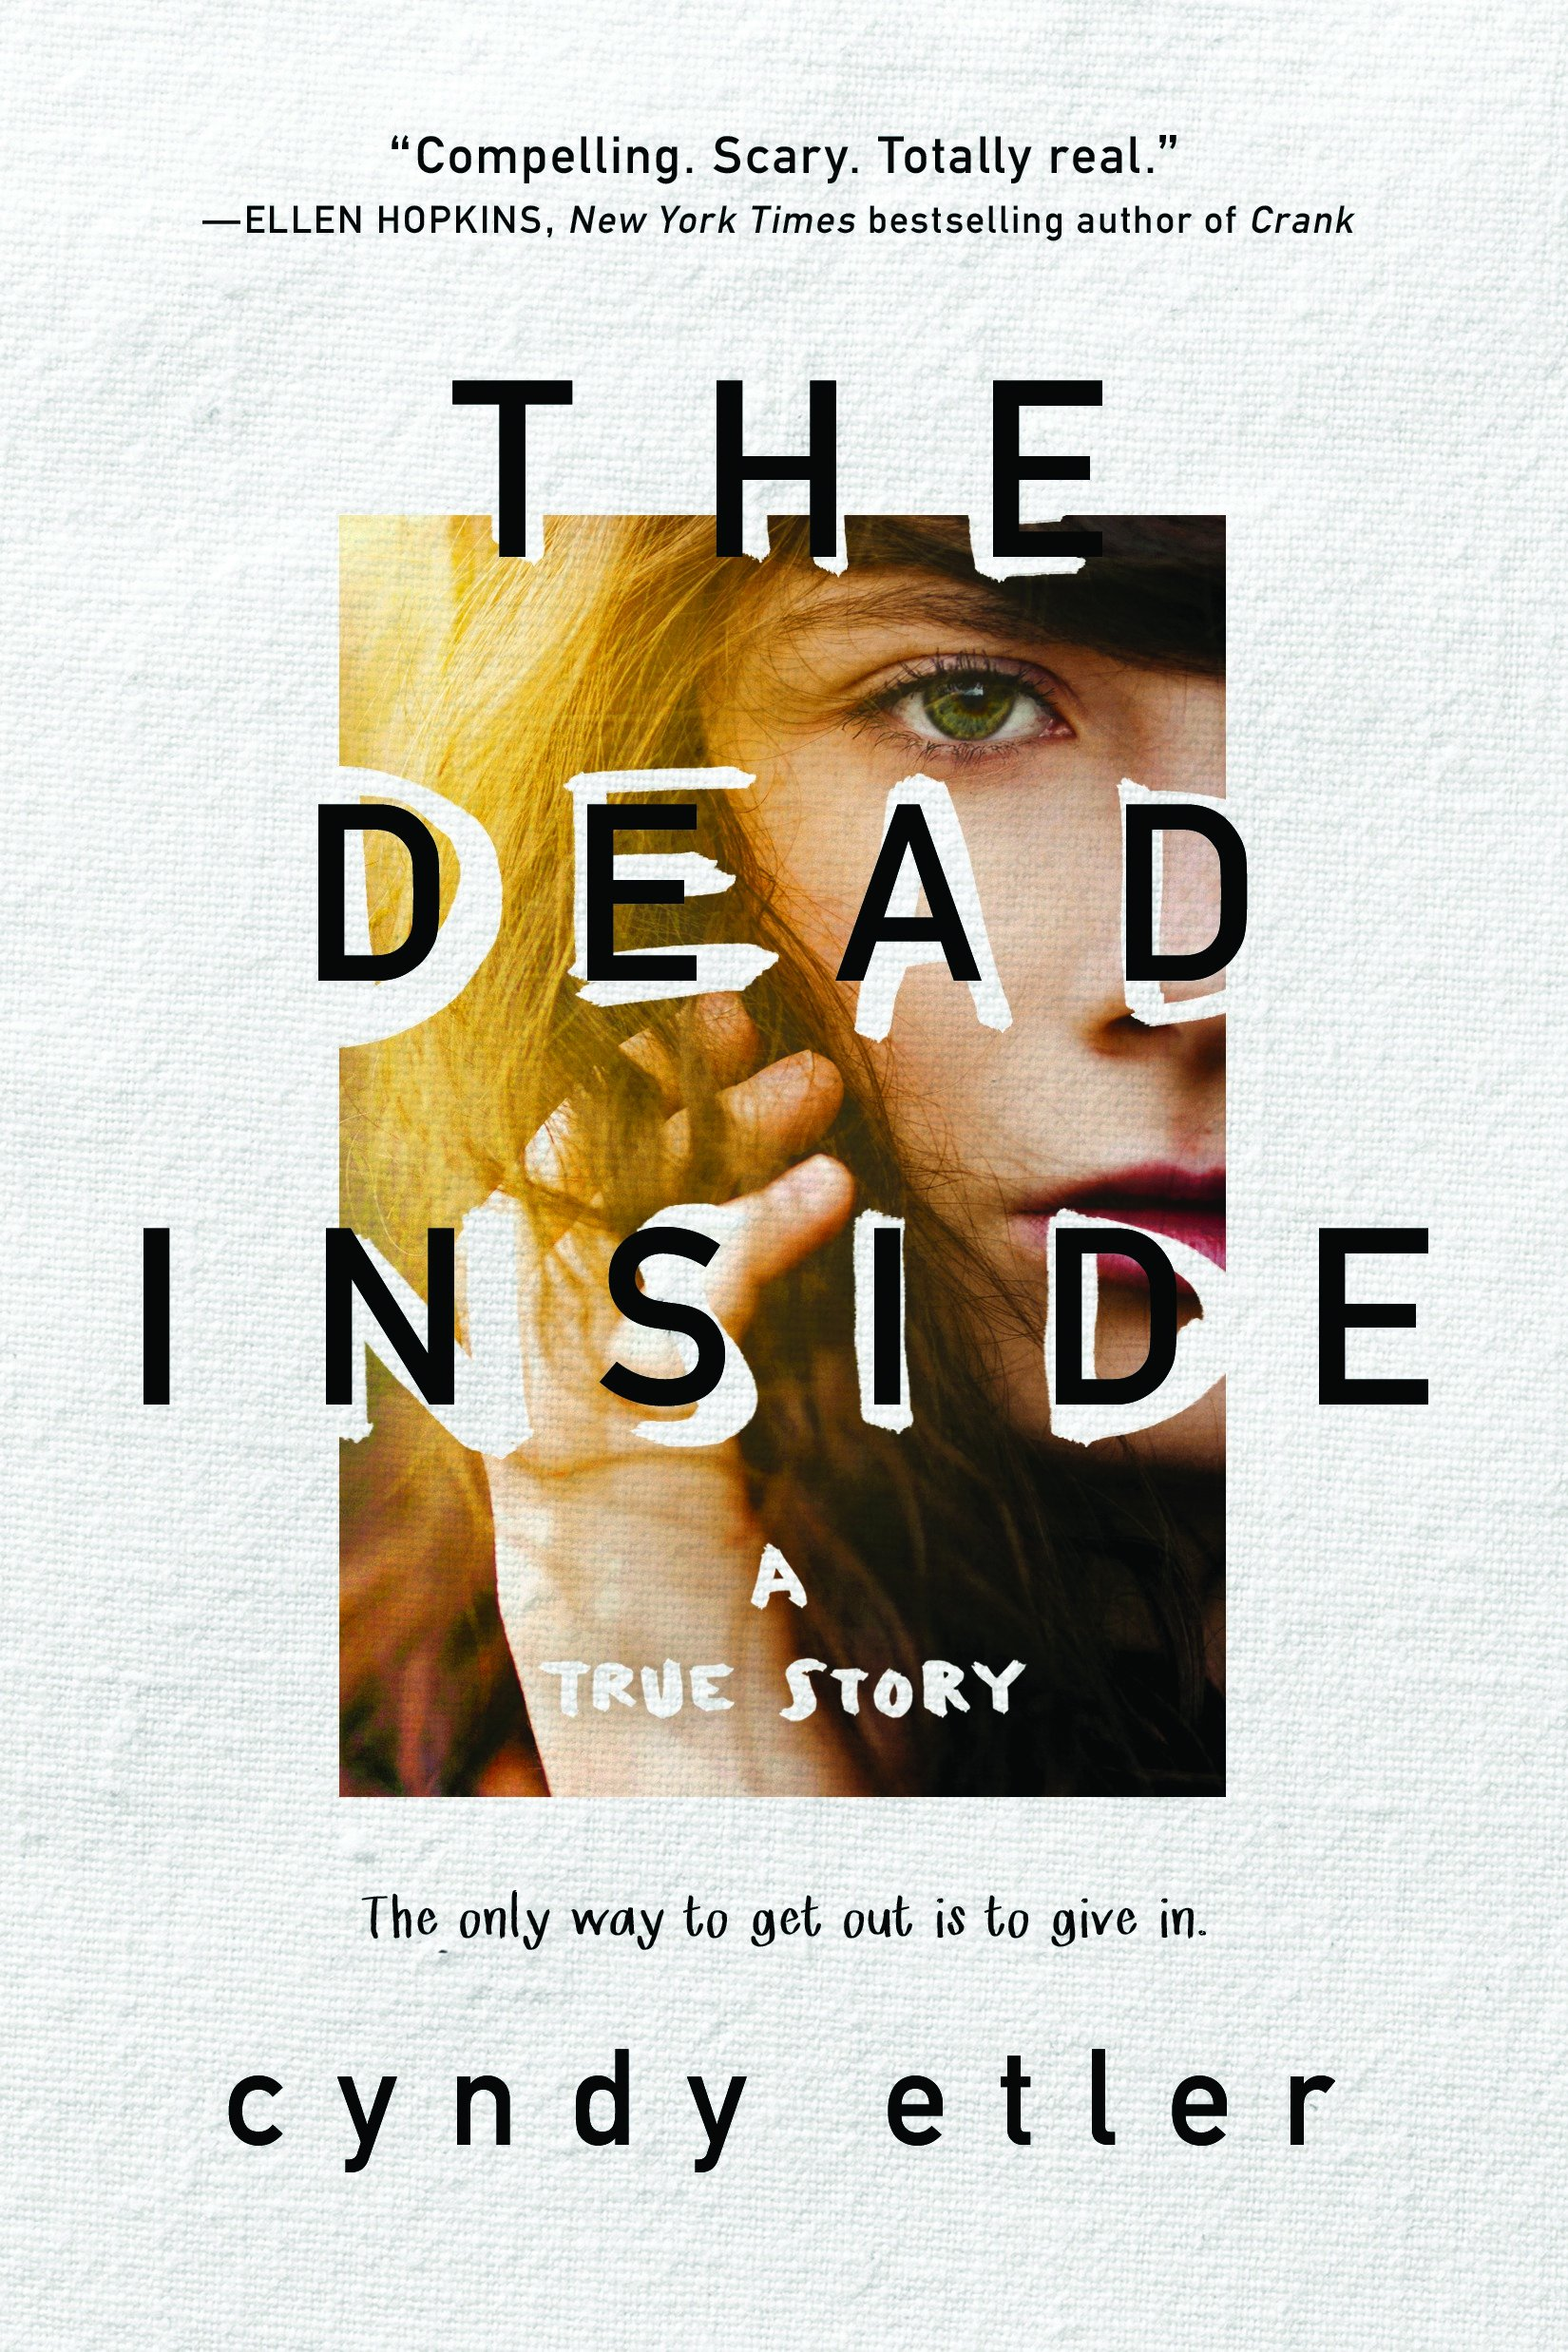 Image result for dead inside novel cyndy